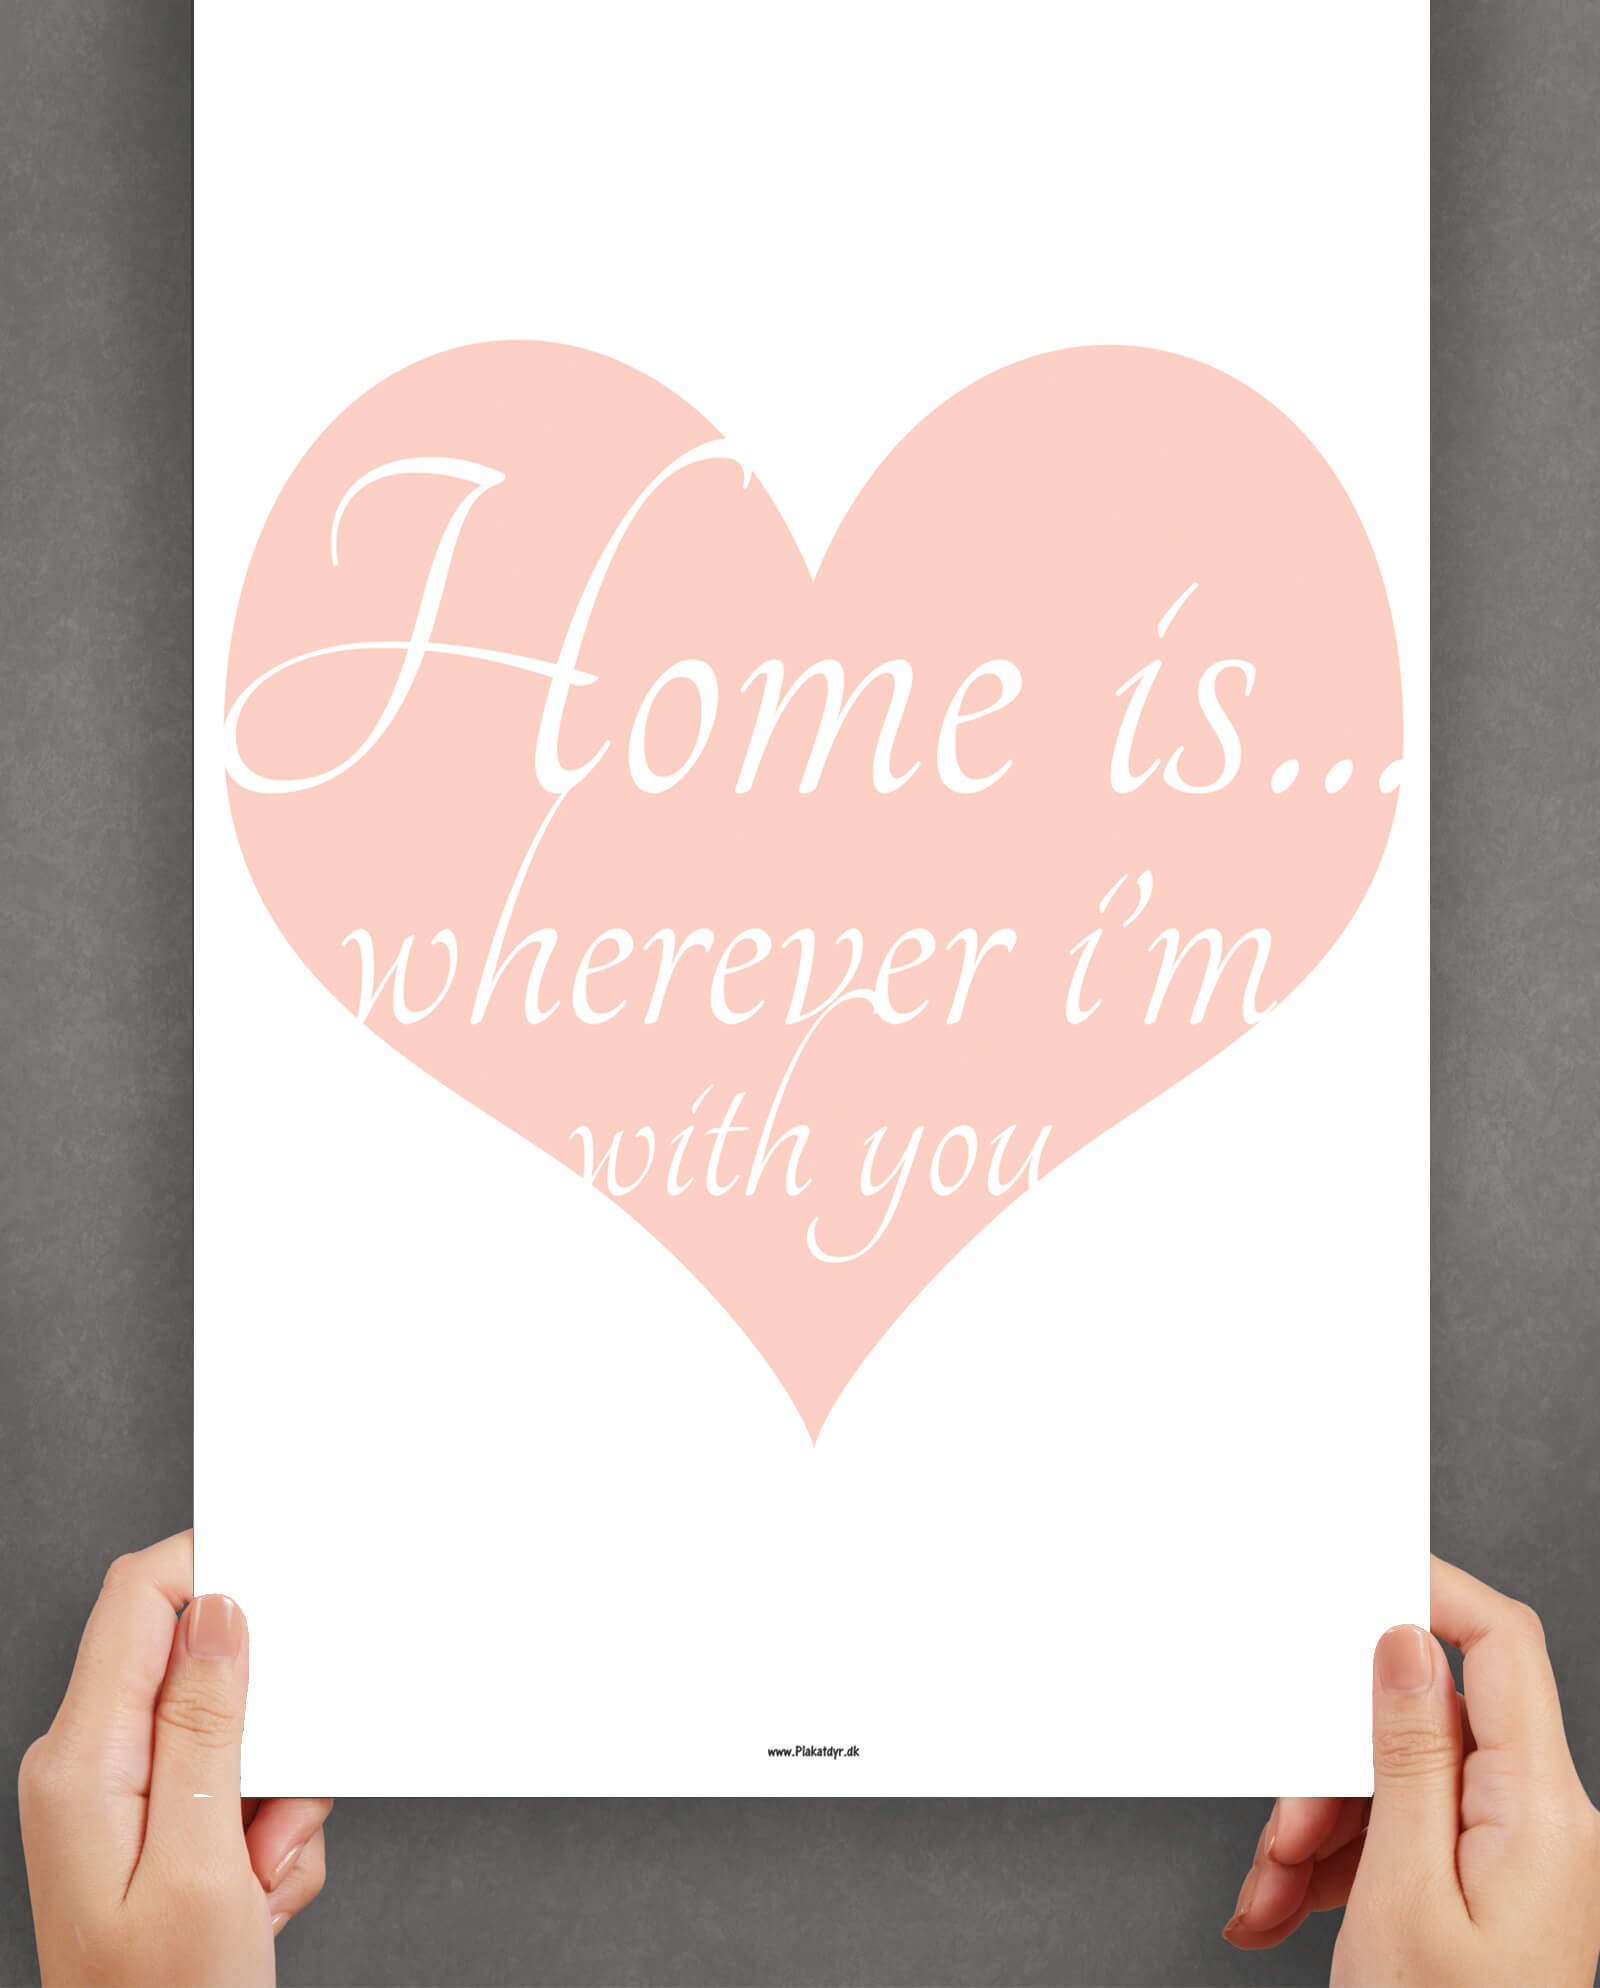 Home-is-wherever-im-with-you